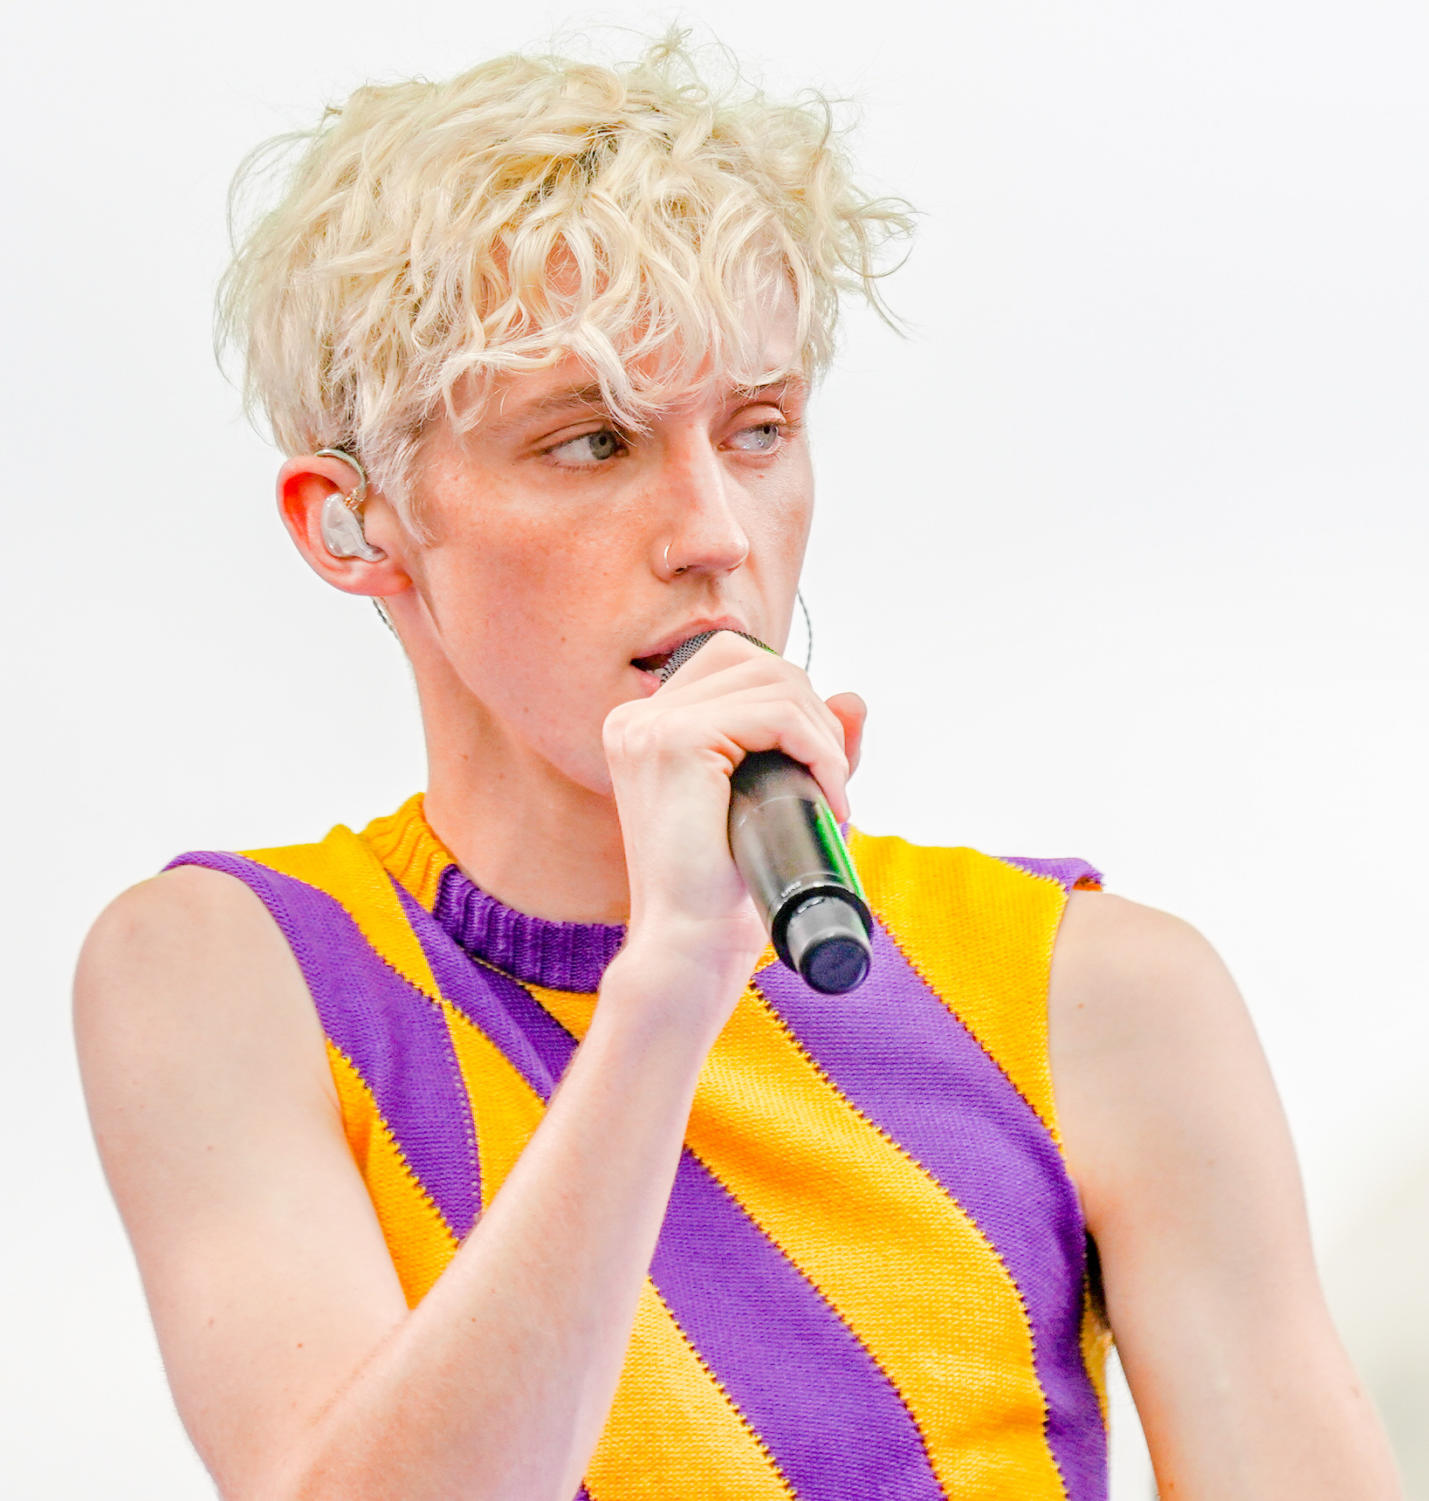 Troye Sivan performed at Washington, D.C.'s Capital Pride in June. (Photo via Wikimedia Commons/Ted Eytan)